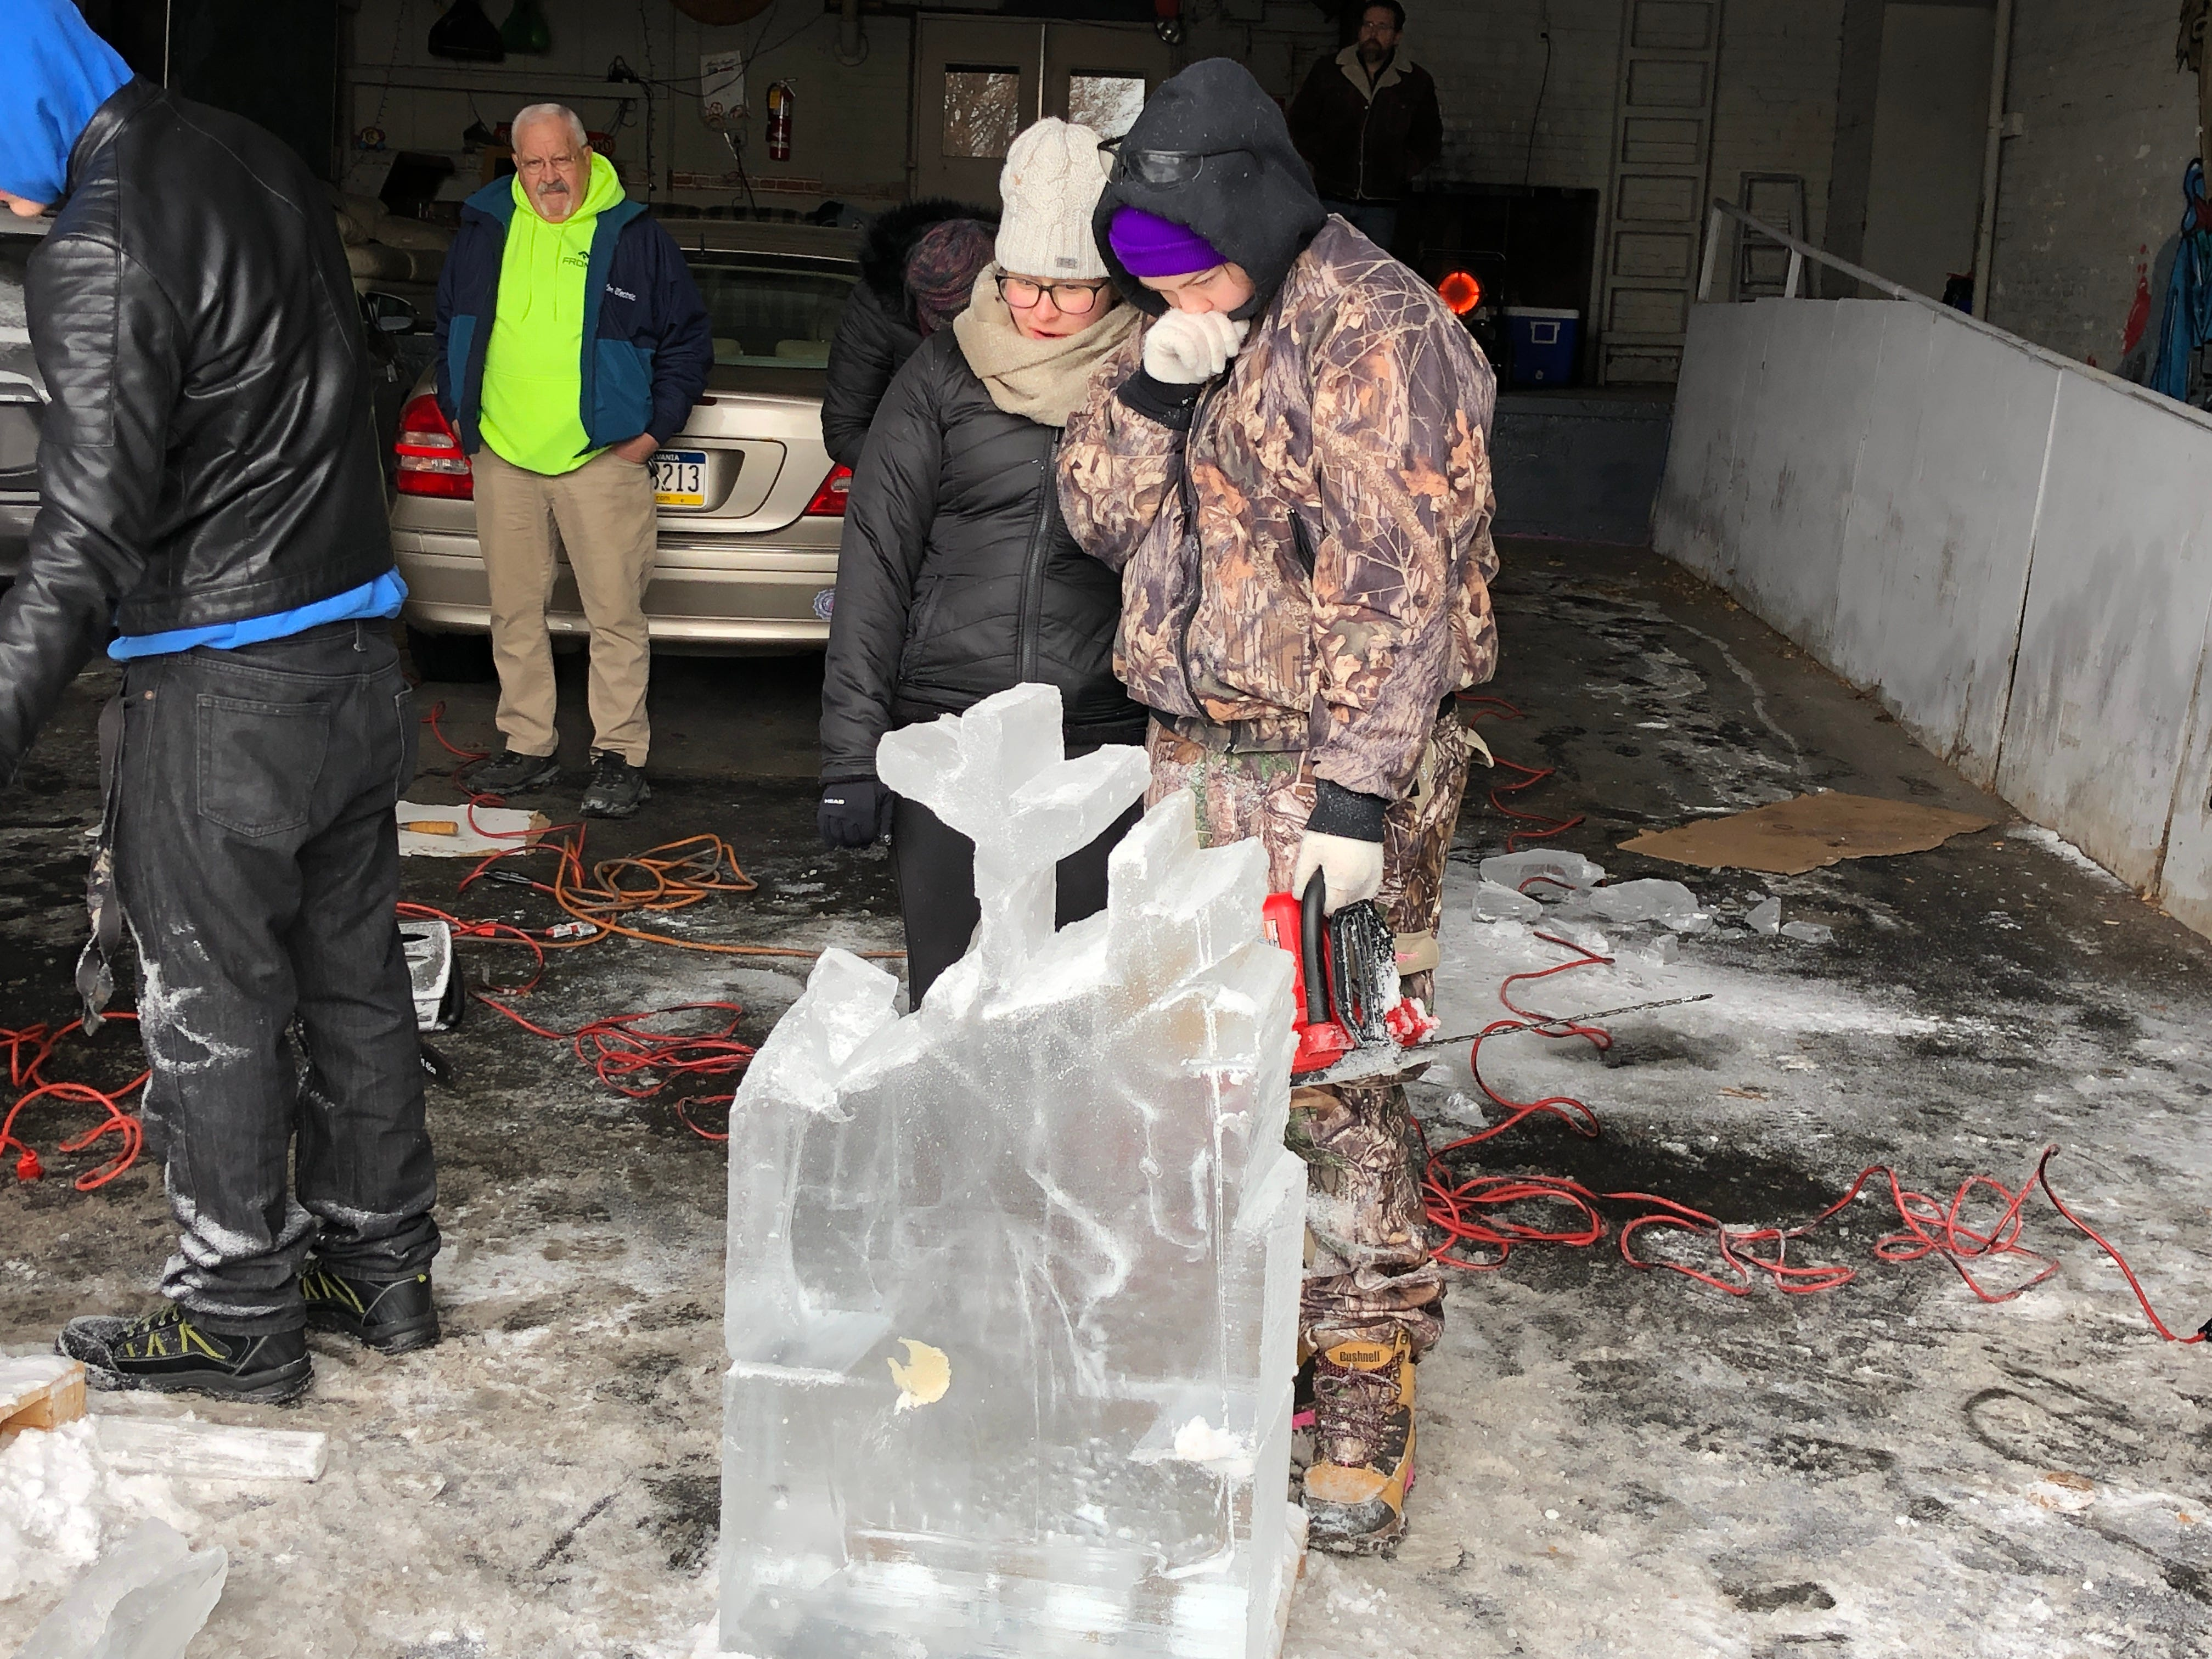 Uh oh. Corina Henry (left) and Hanna Koehler got a bad block of ice, and a crack caused a chunk to break. They were troopers, though, finishing the sculpture anyway.